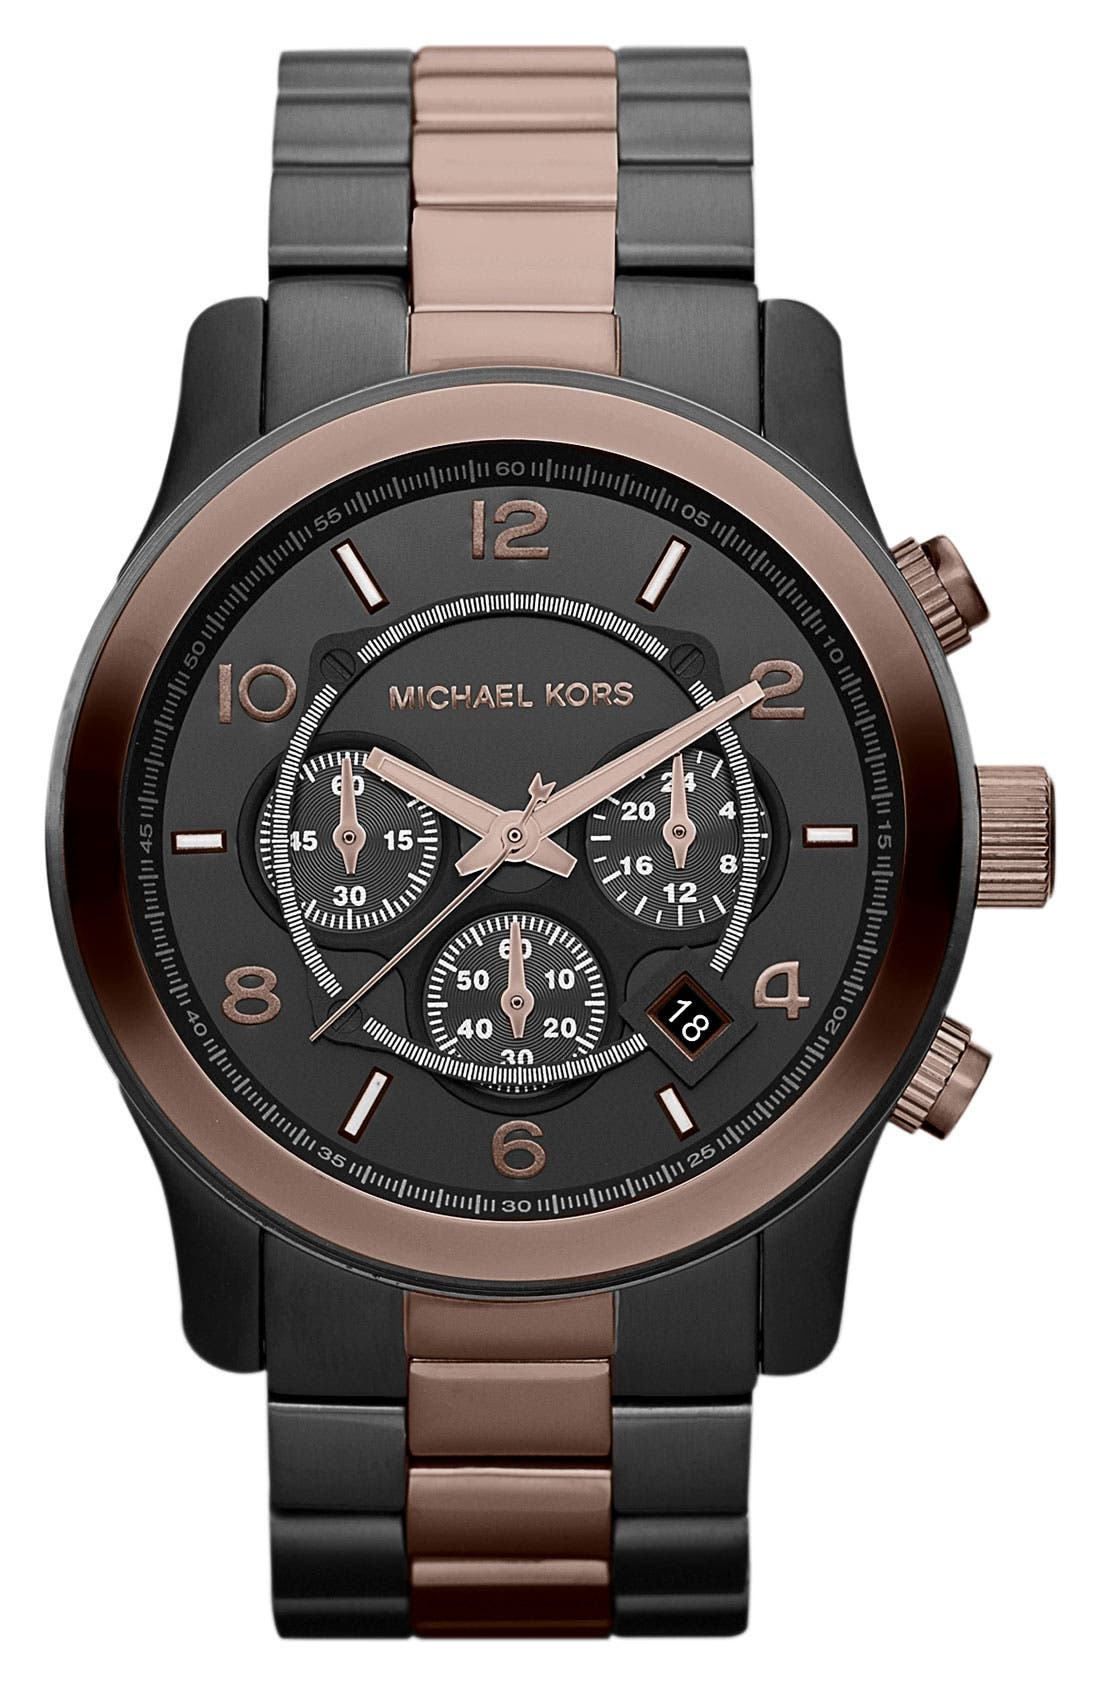 Main Image - Michael Kors 'Large Runway' Two Tone Chronograph Watch, 45mm